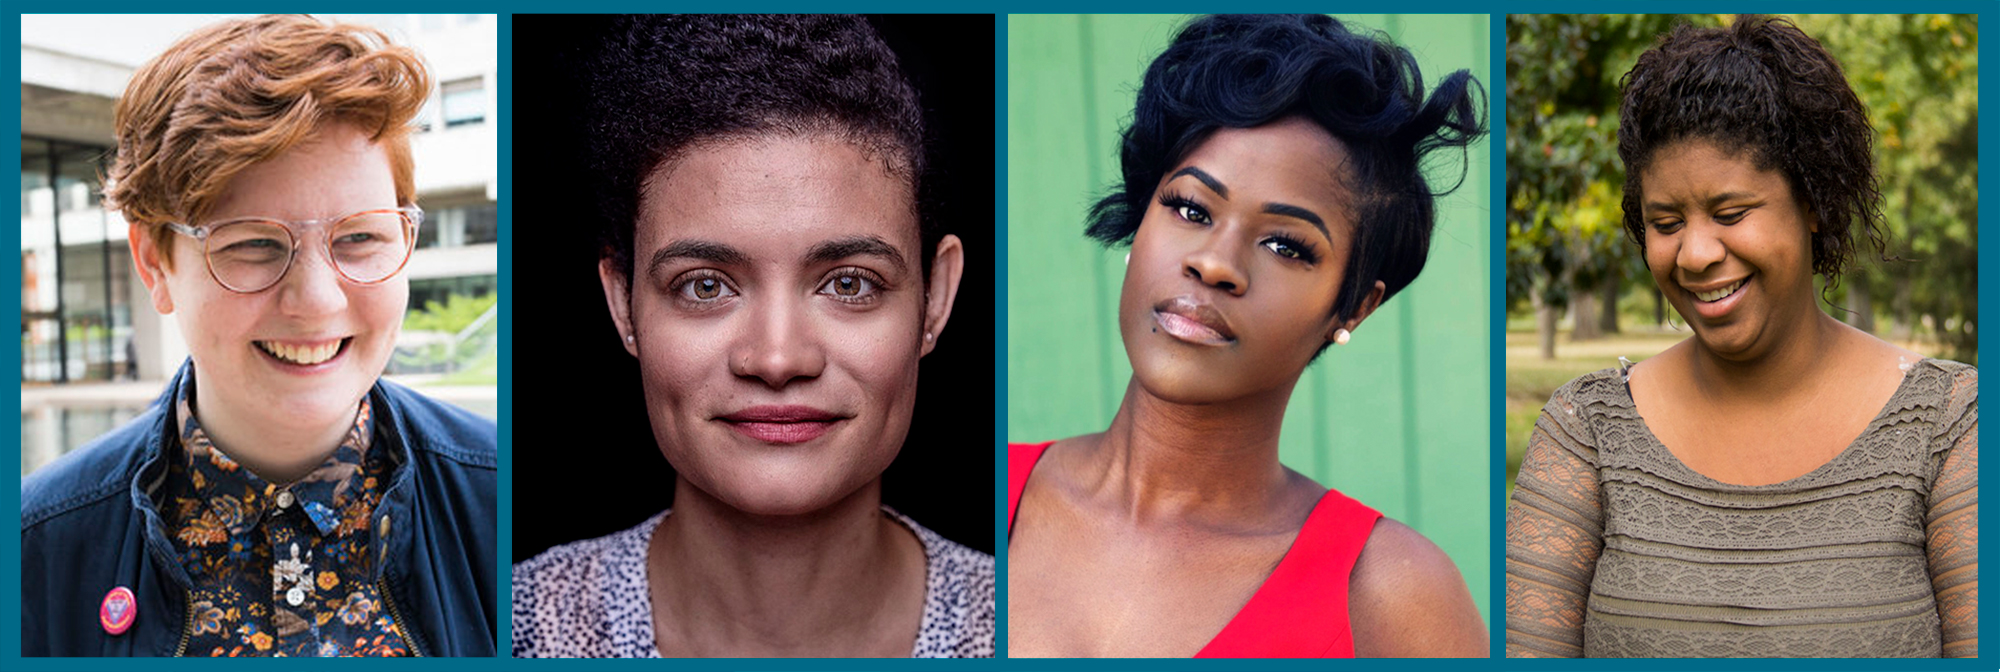 Playwrights to be featured at the festival include (L to R) Bryna Turner, Adrienne Dawes, Na'Tosha De'Von, and Rachel Lynett.